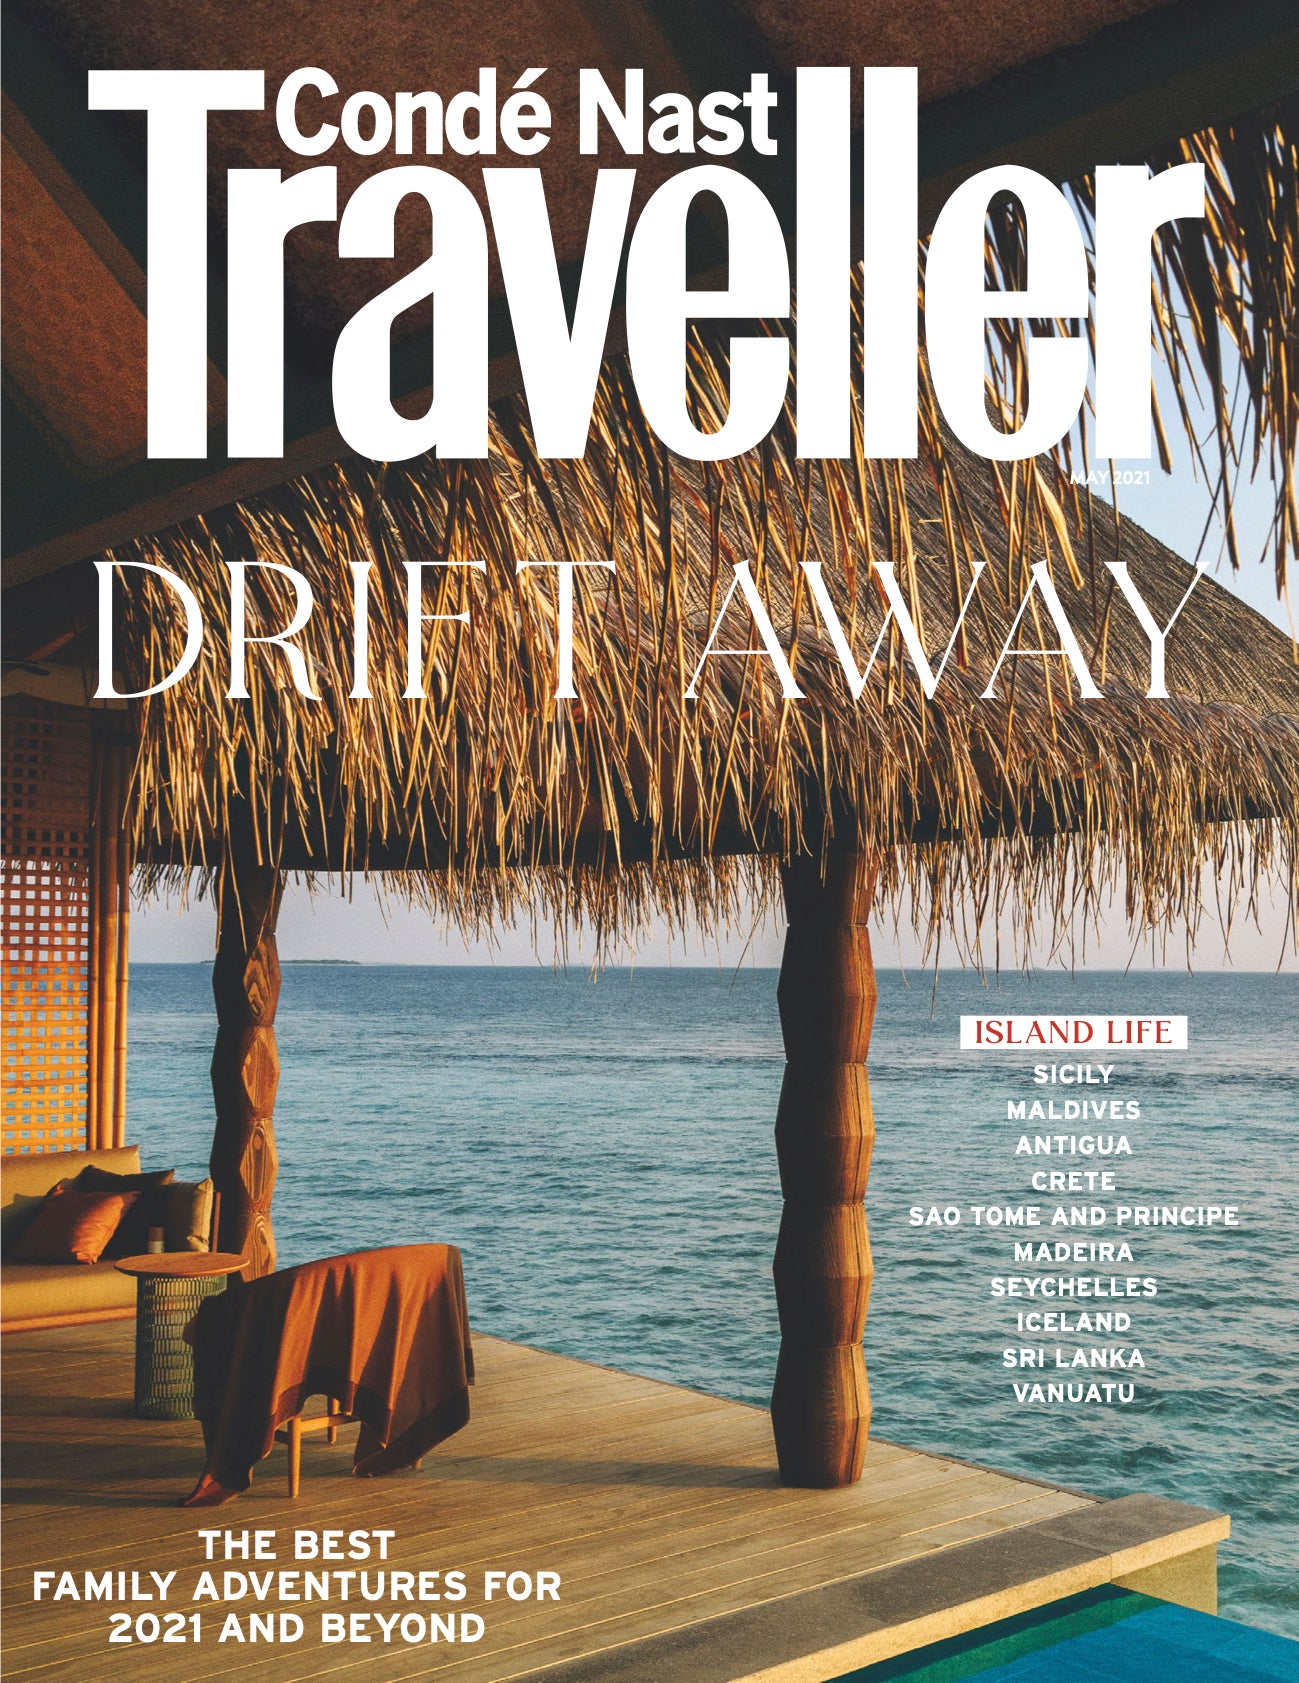 Condé Nast Traveller - Cover May 2021